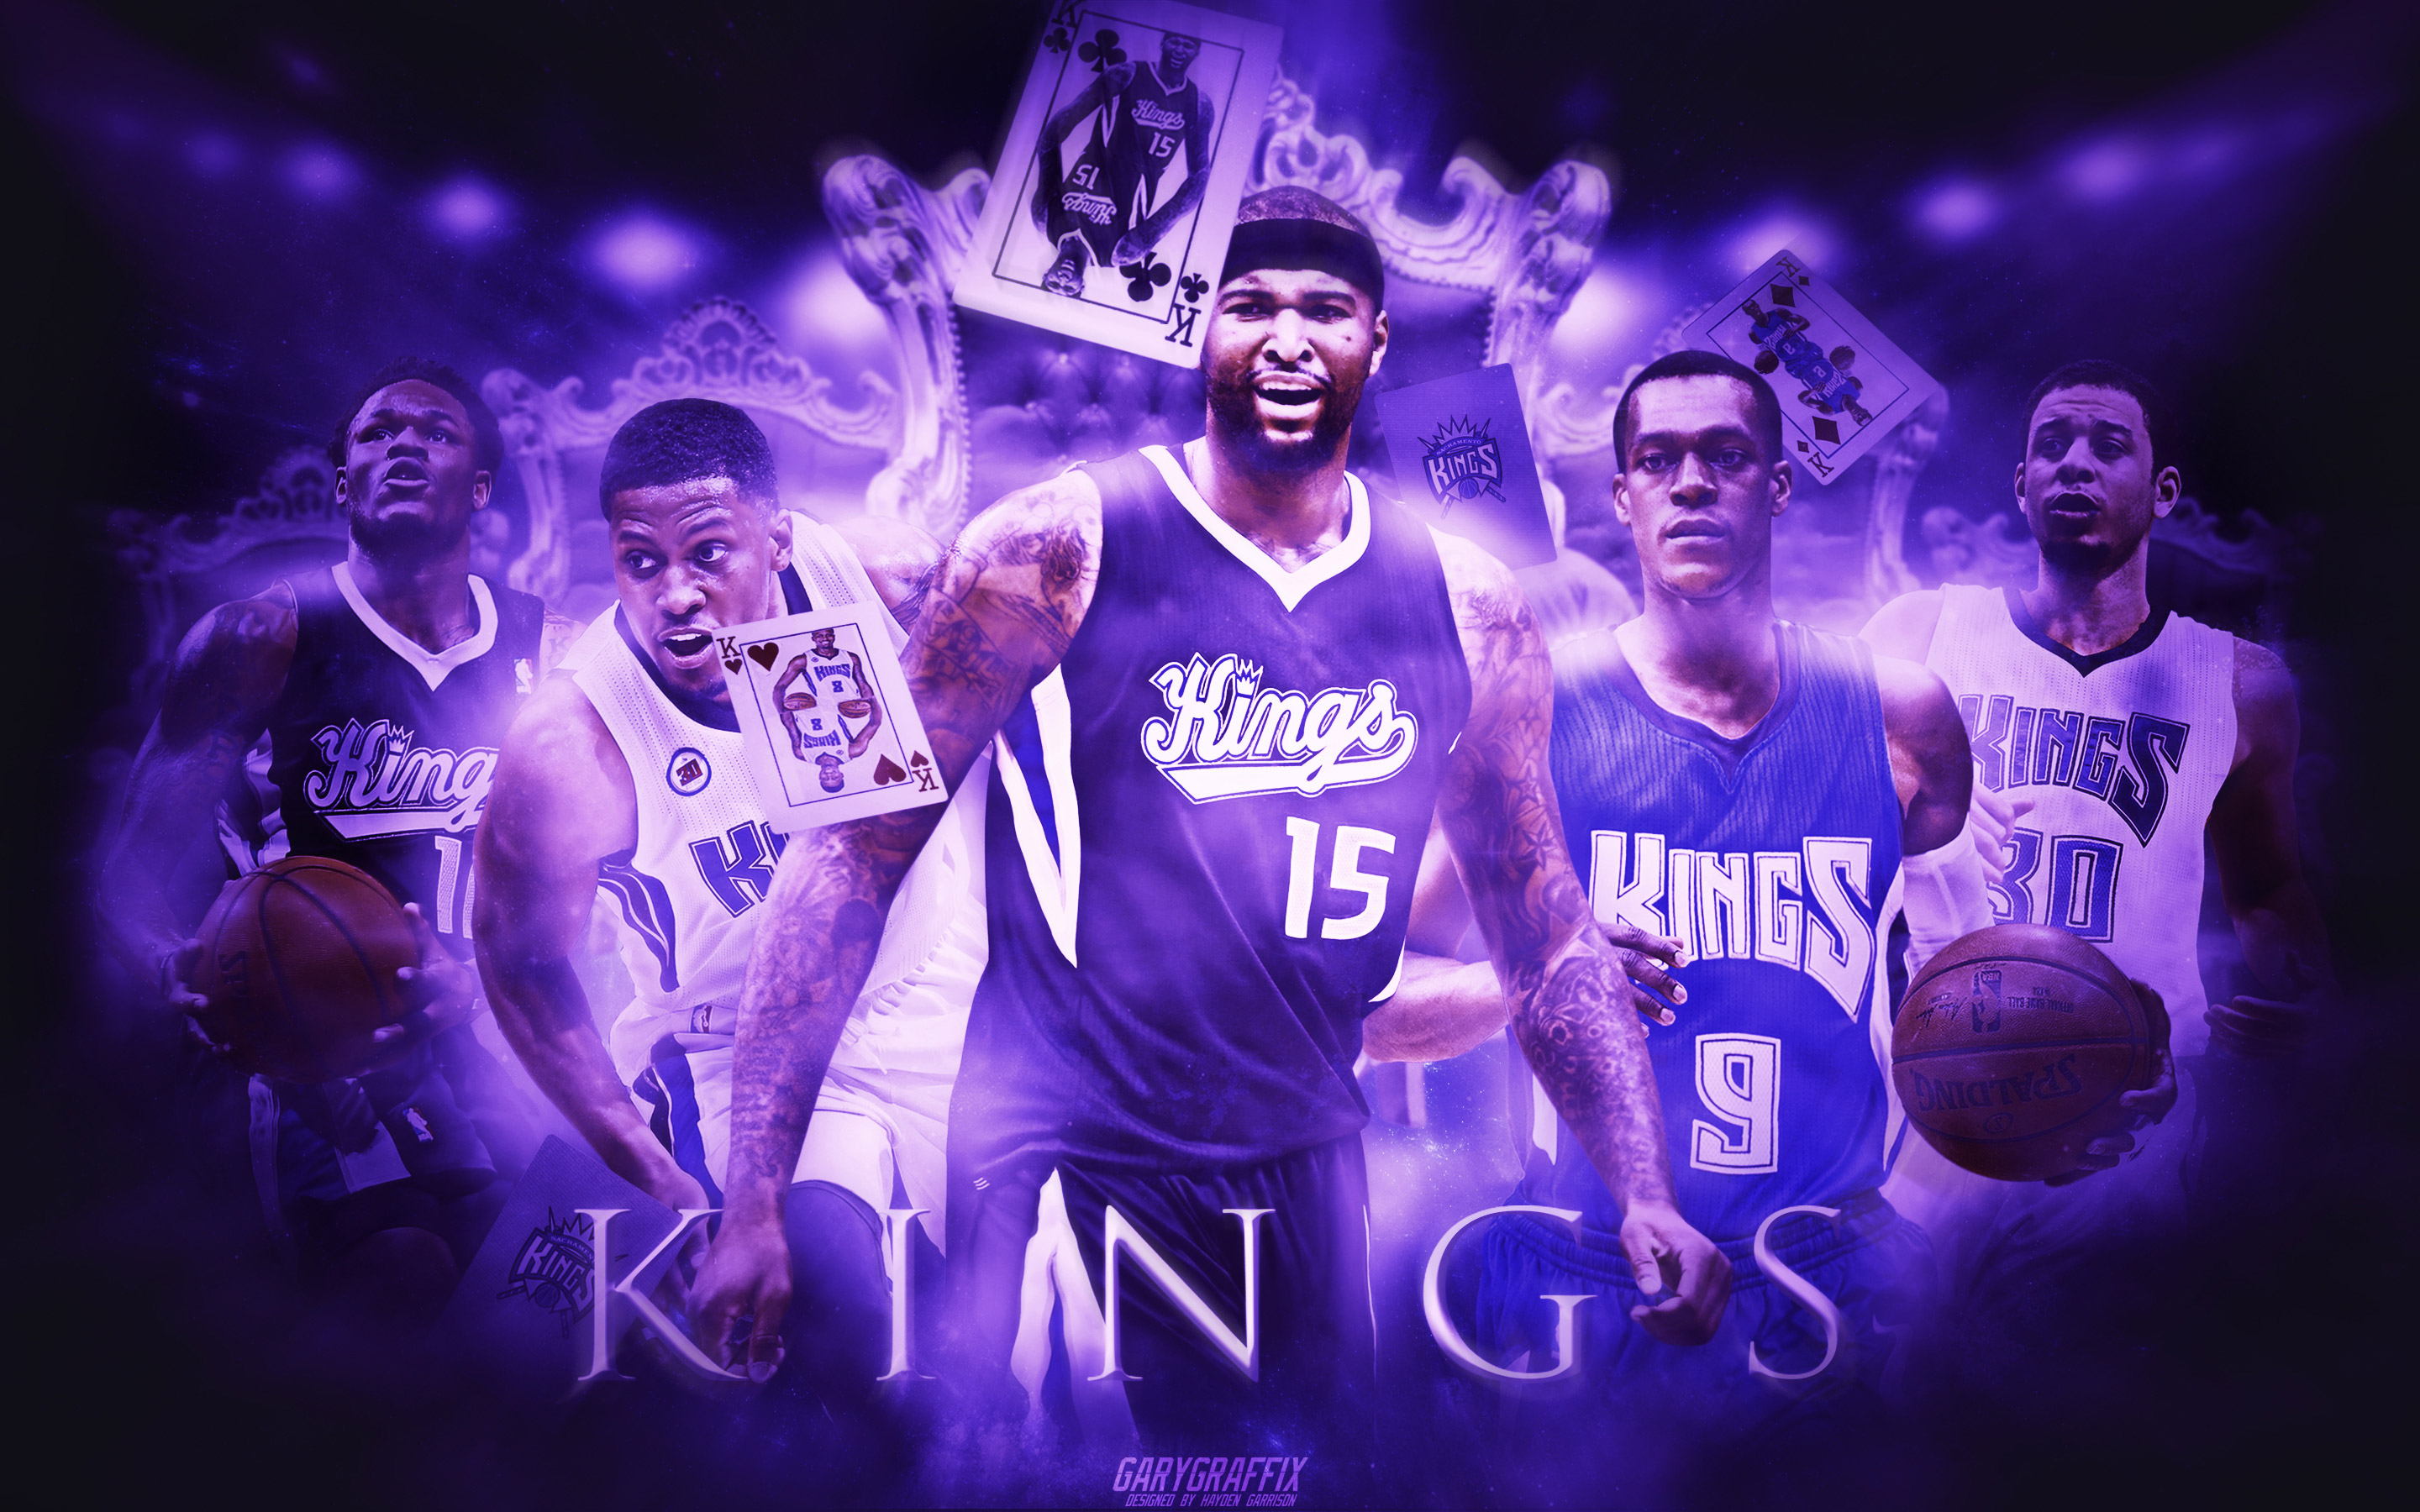 Sacramento Kings 2015 2016 Wallpaper Basketball Wallpapers at 2880x1800